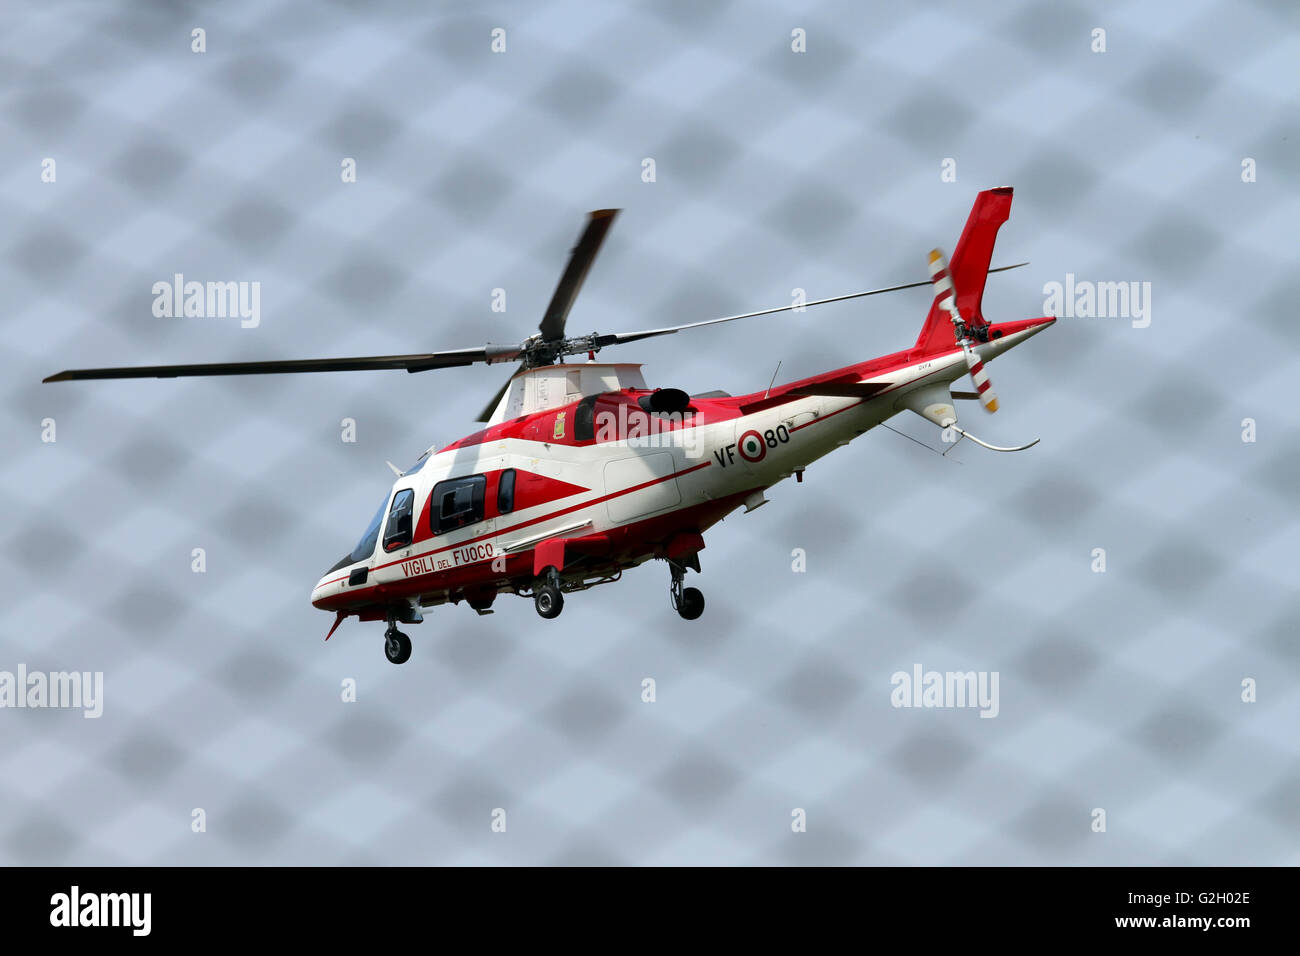 Vigili del Fuoco VF 80 Agusta A109 Power Helicopter Photographed at Malpensa airport, Milan, Italy - Stock Image